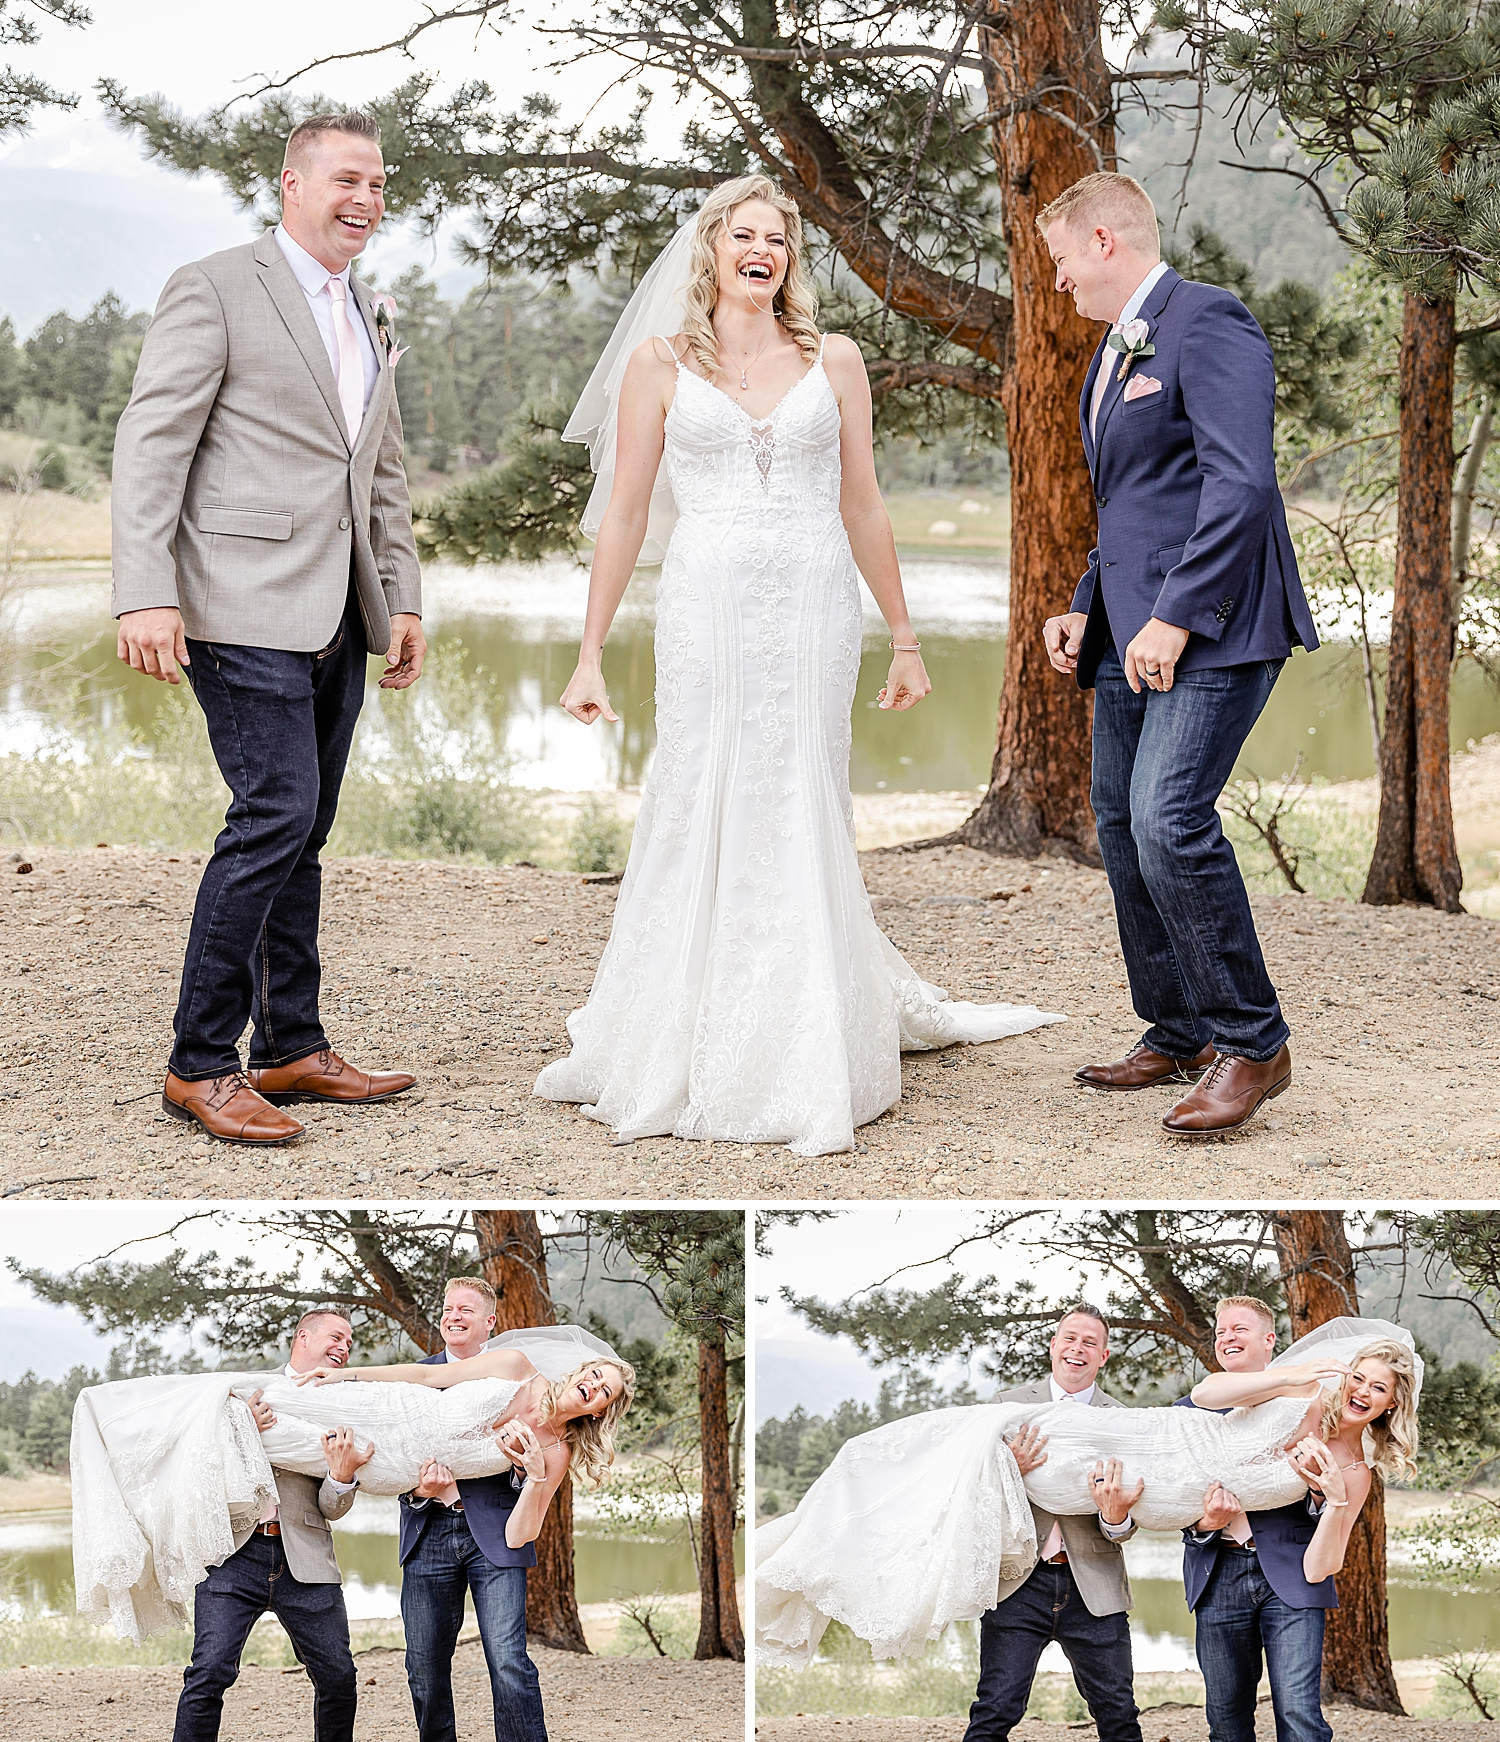 Carly-Barton-Photography-Rocky-Mountain-National-Park-Estes-Park-Wedding-Elopement_0103.jpg